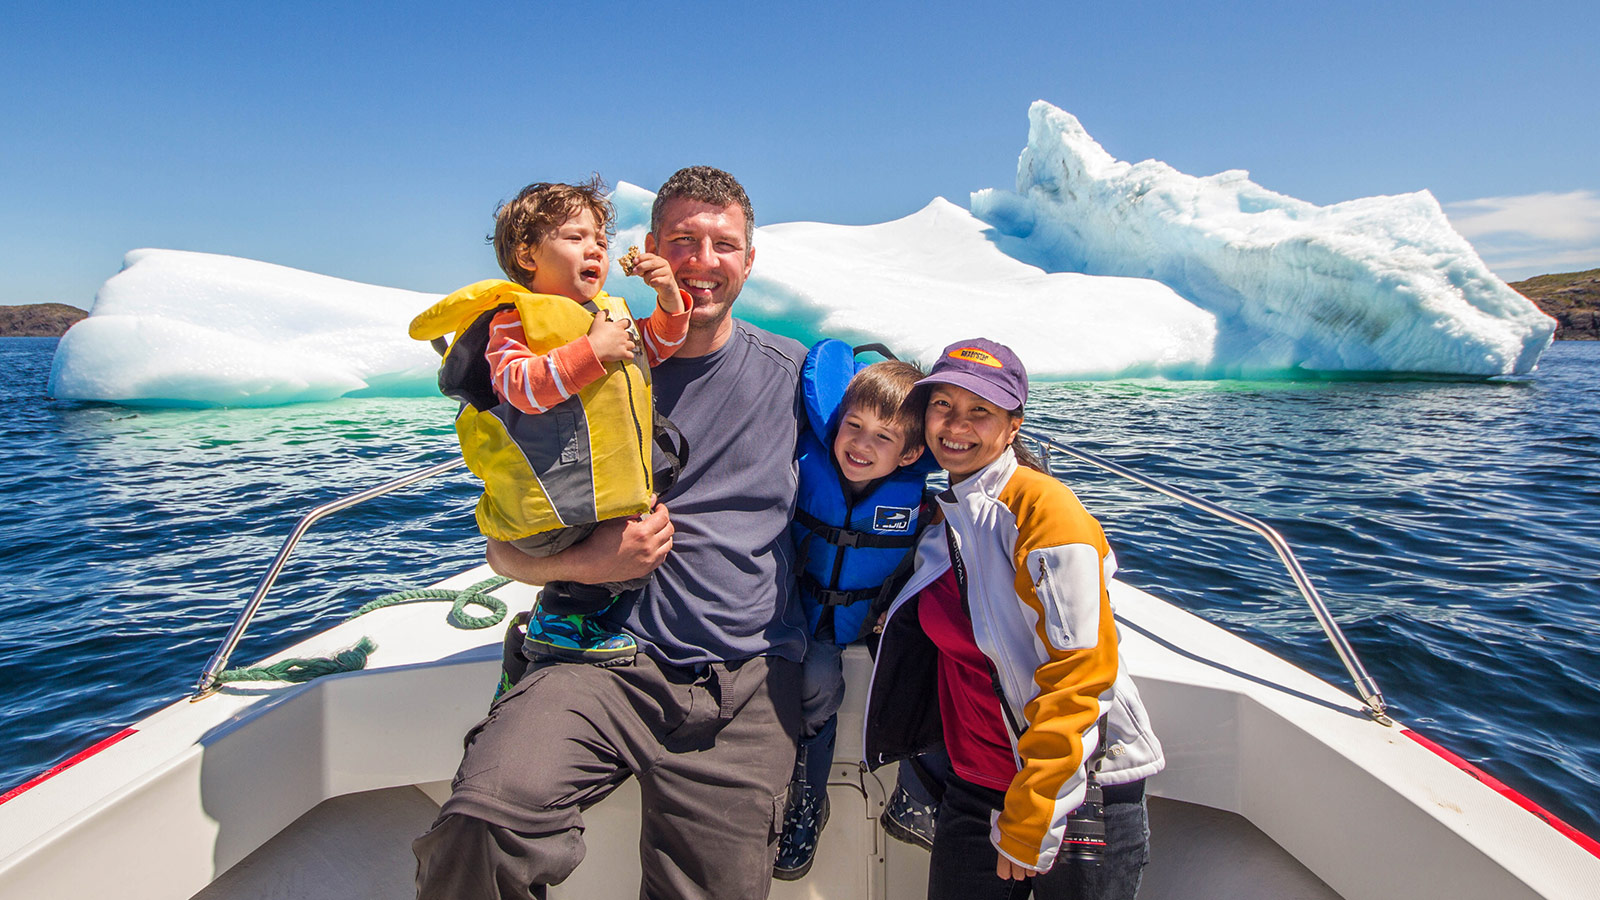 A young family smiles from the bow of a small boat while a large iceberg floats behind them - Icebergs in Twillingate